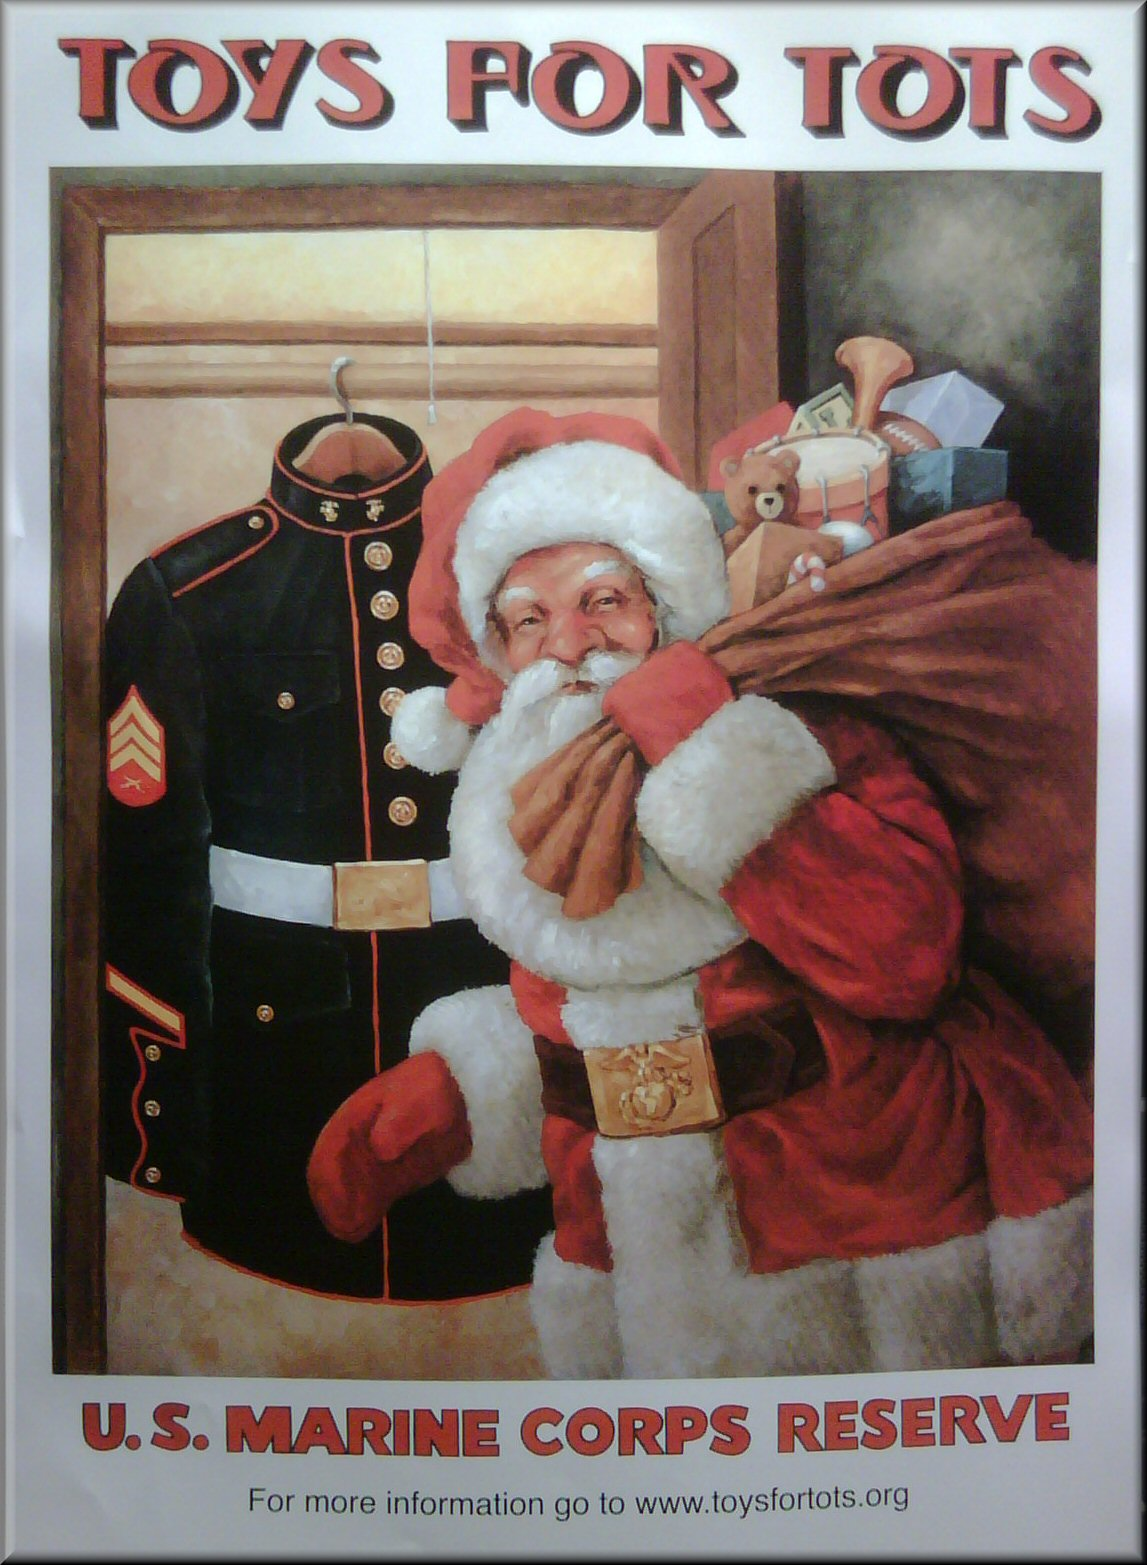 Toys For Tots Santa : Toys for tots toy drive atlantica tender drilling